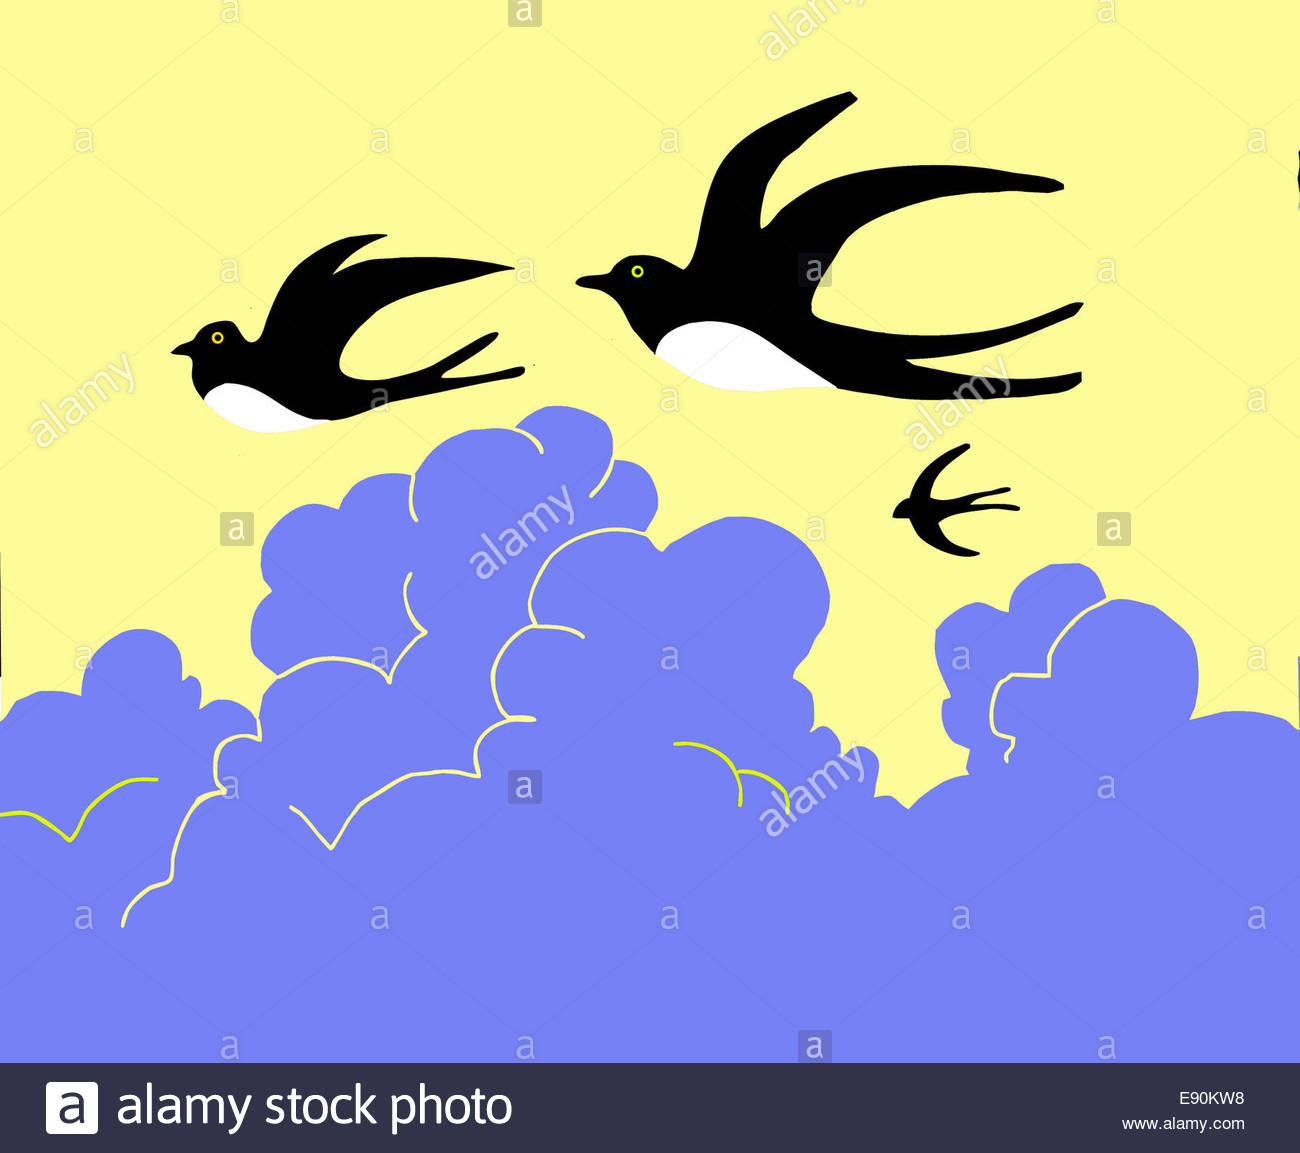 1300x1153 Drawing Swallow Flying To Cloudy Sky Stock Photo, Royalty Free